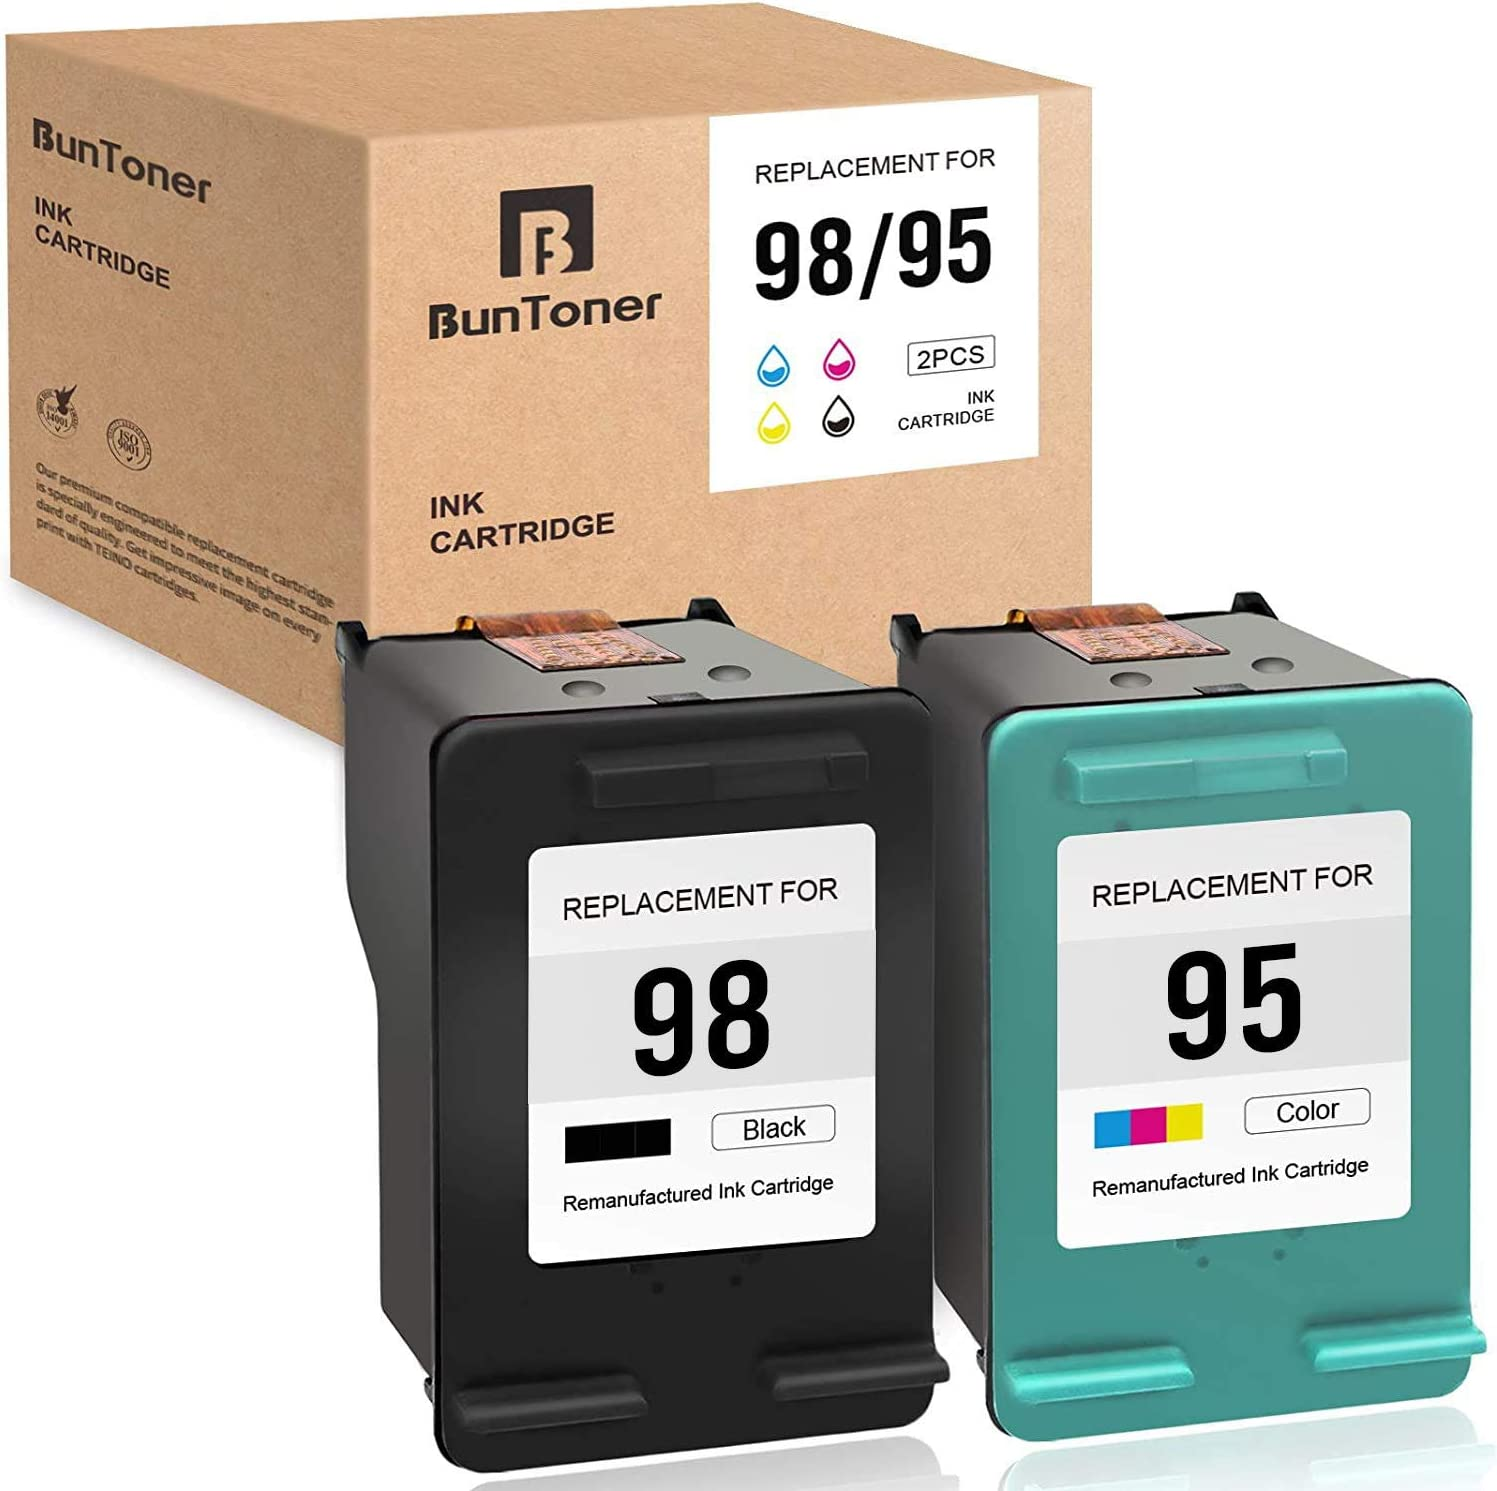 BUNTONER Remanufactured Ink Cartridges Replacement for HP 98 95 C9364WN C8766WN use with HP OfficeJet 100 150 H470 DeskJet 5940 PhotoSmart 2575 C4180 2570 D5069 C4100 (Black, Tri-Color, 2-Pack)